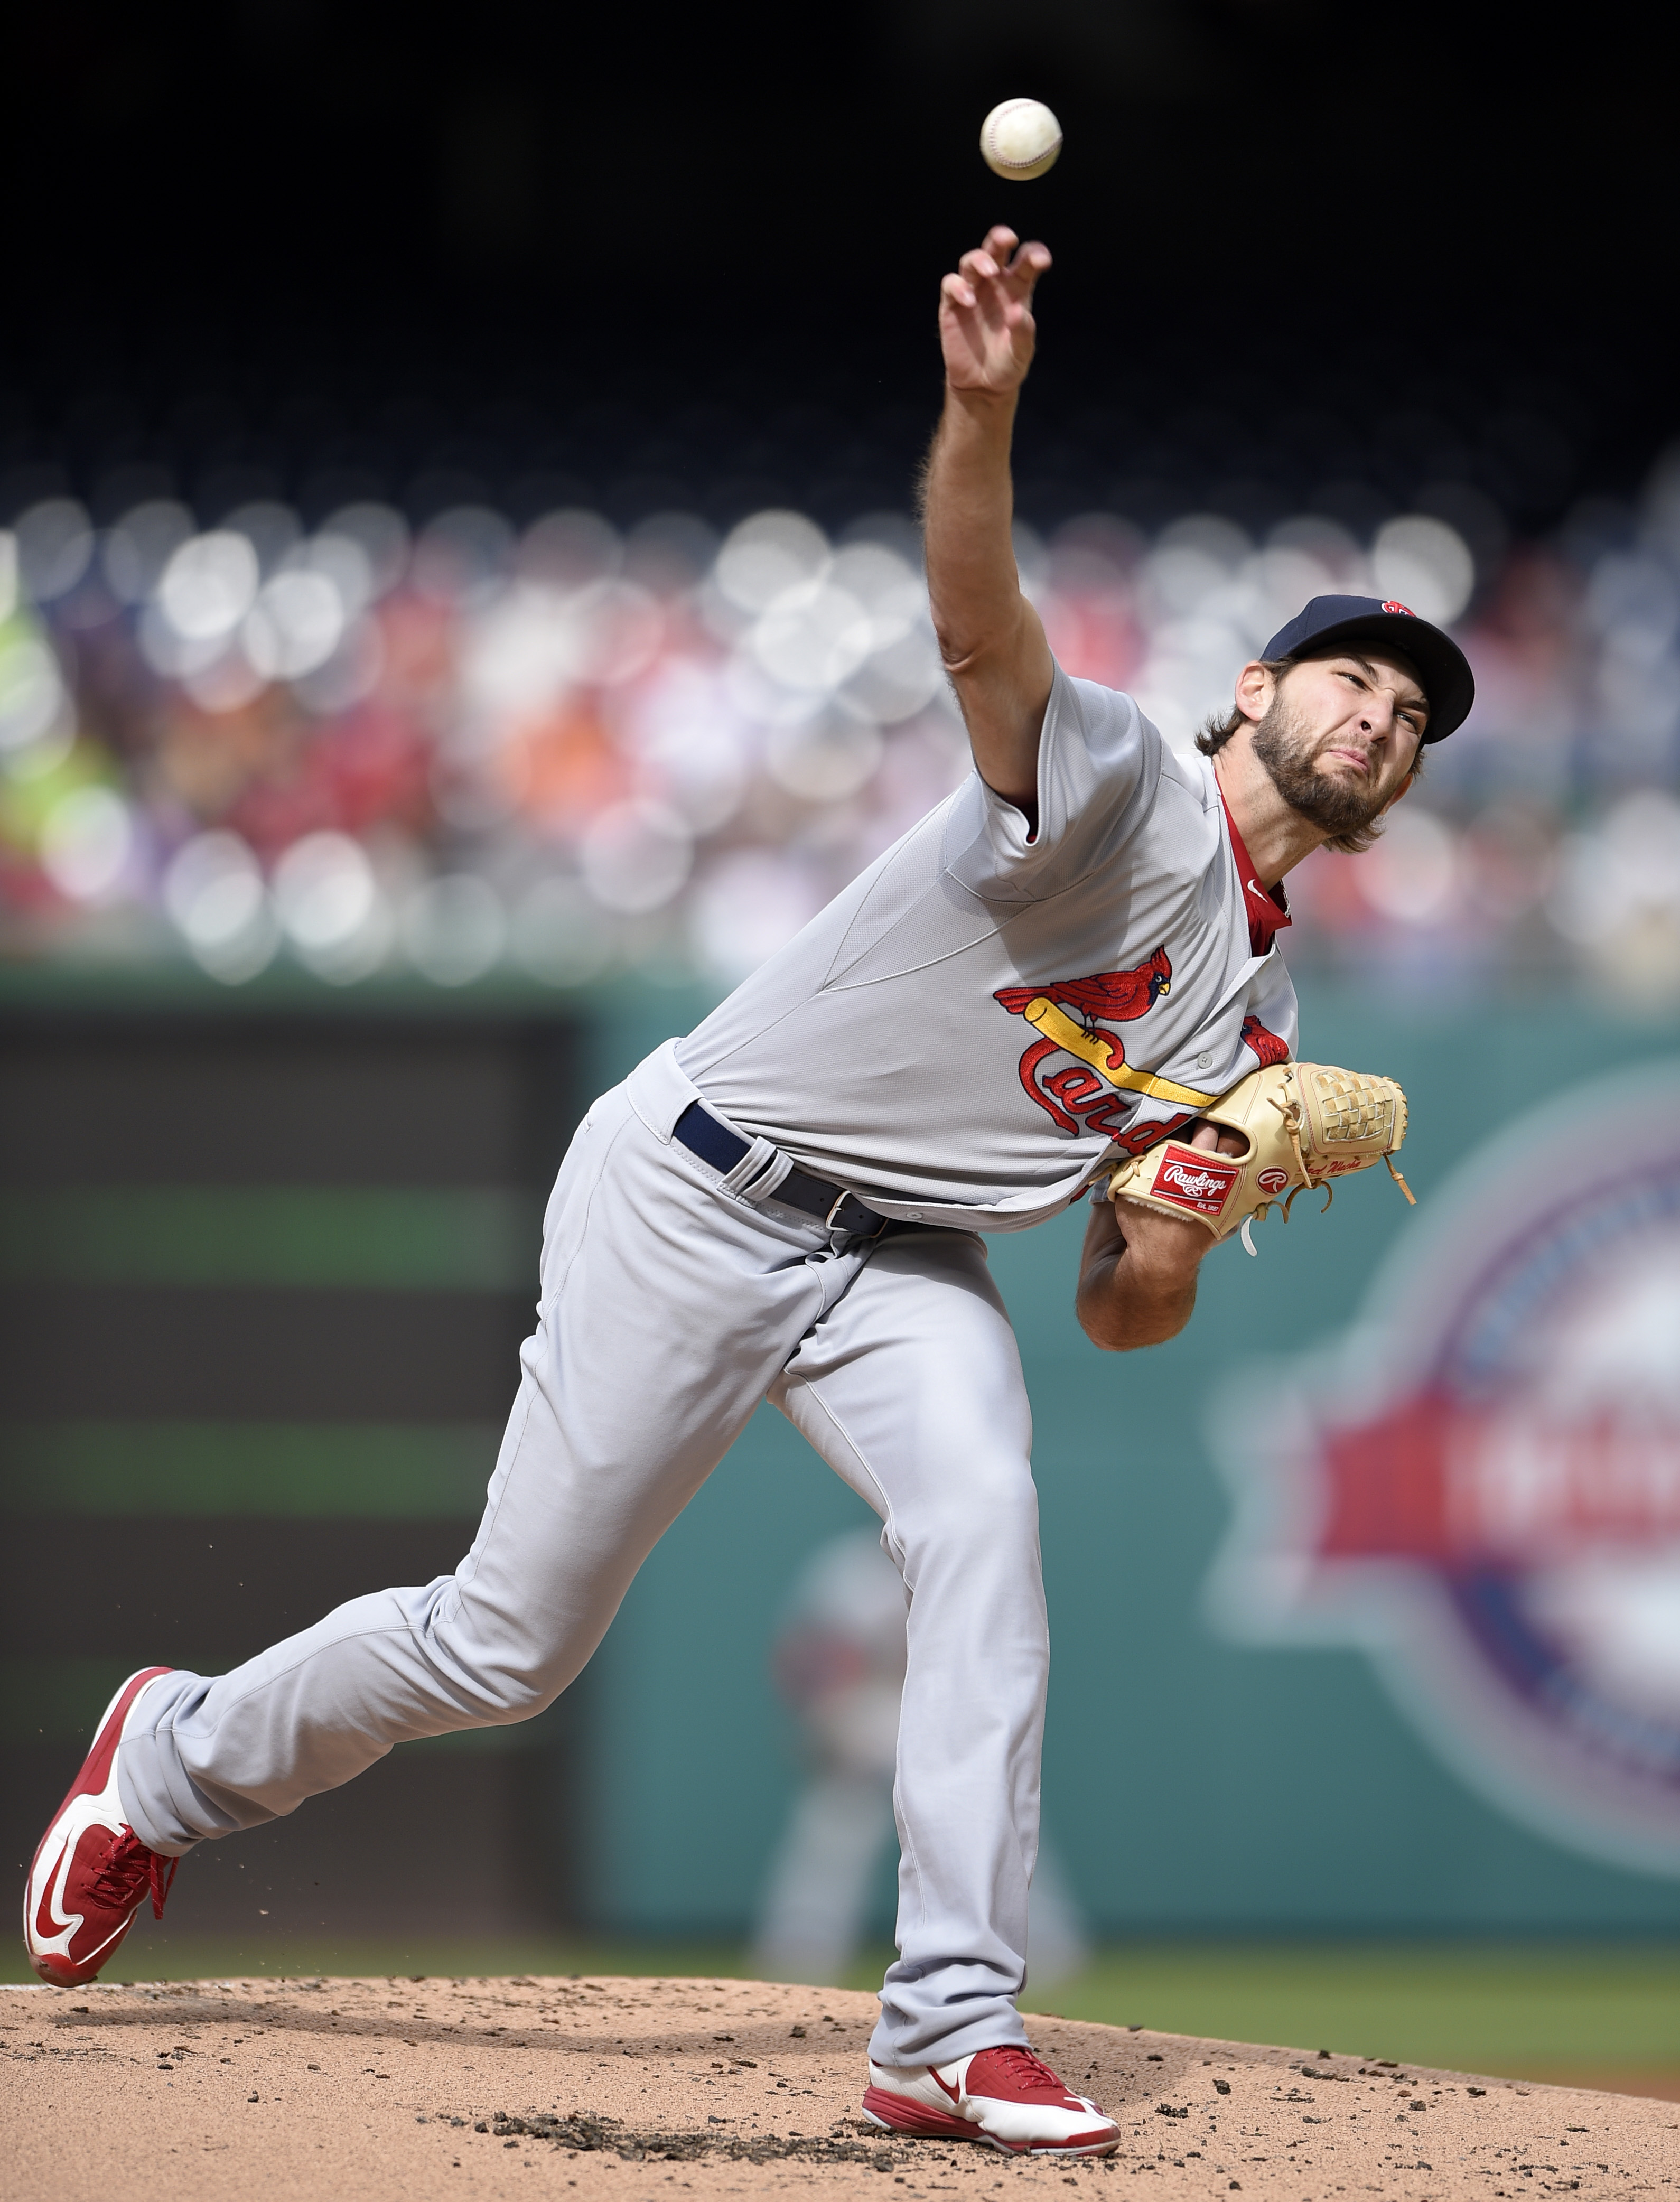 St. Louis Cardinals starting pitcher Michael Wacha (52) delivers a pitch during the first inning of a baseball game against the Washington Nationals, Thursday, April 23, 2015, in Washington. (AP Photo/Nick Wass)